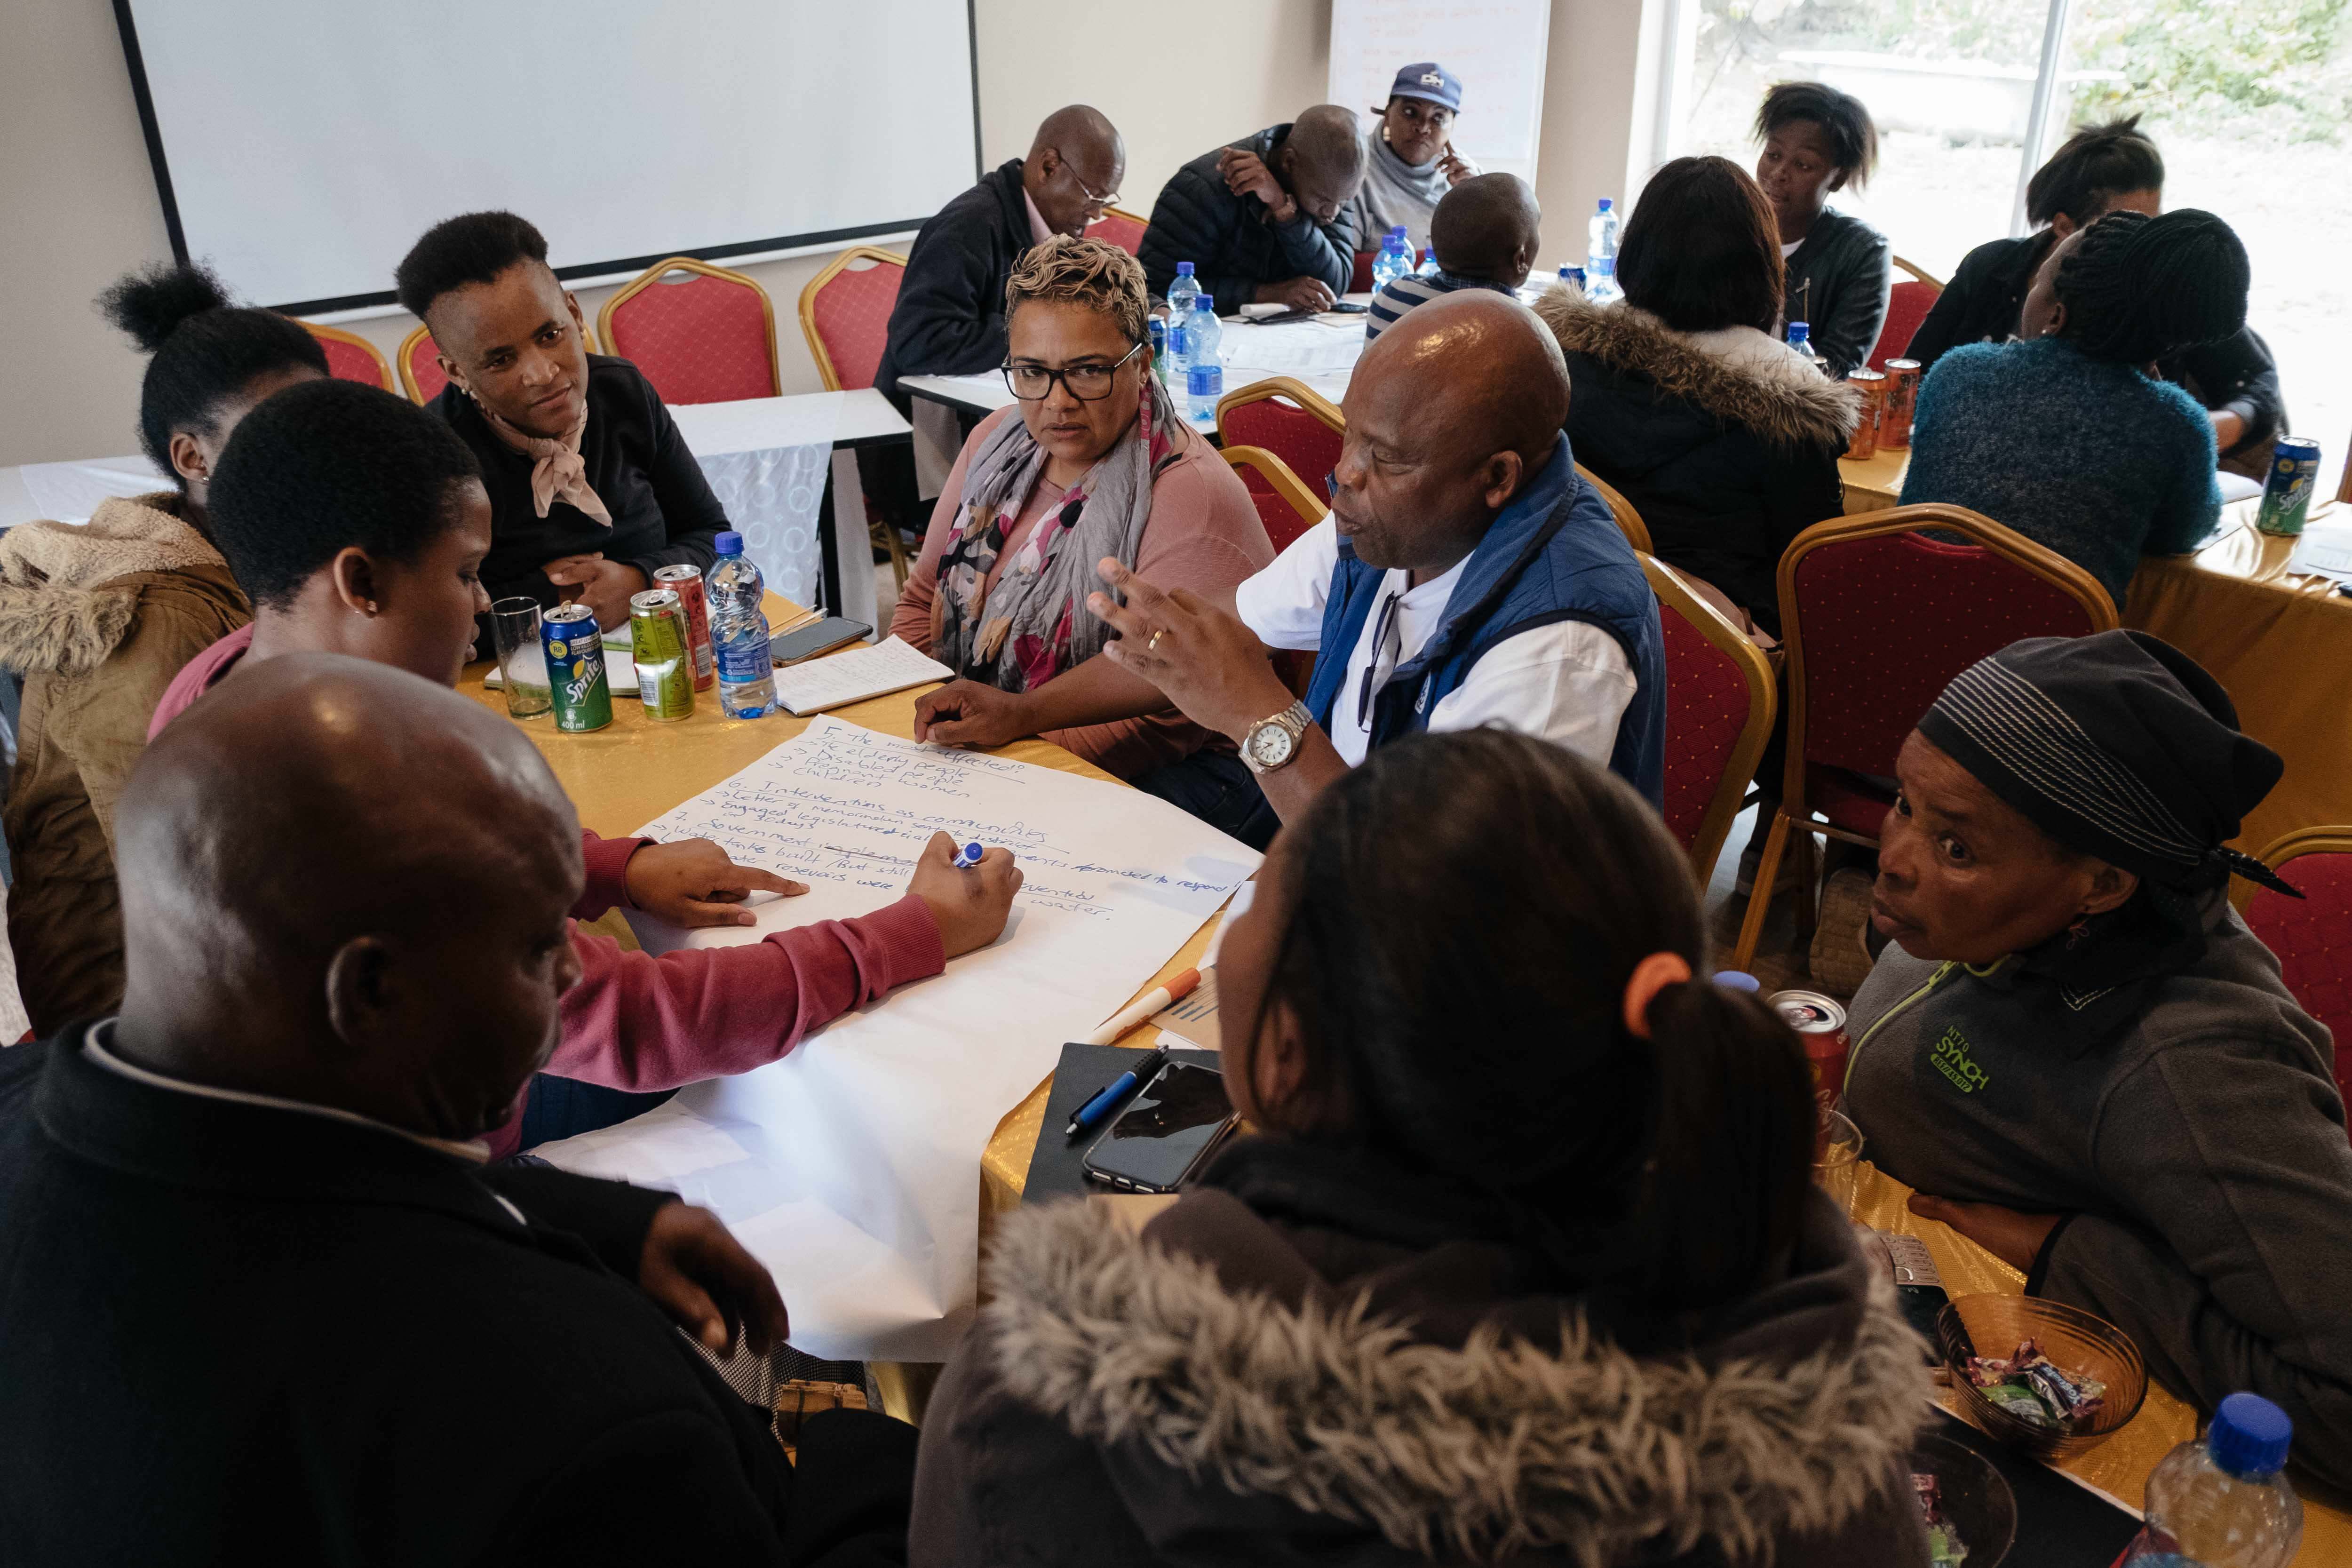 11 November 2019: Activists formed focus groups to share their experience, discuss problems on the ground and map out a plan of action to take back to their communities.